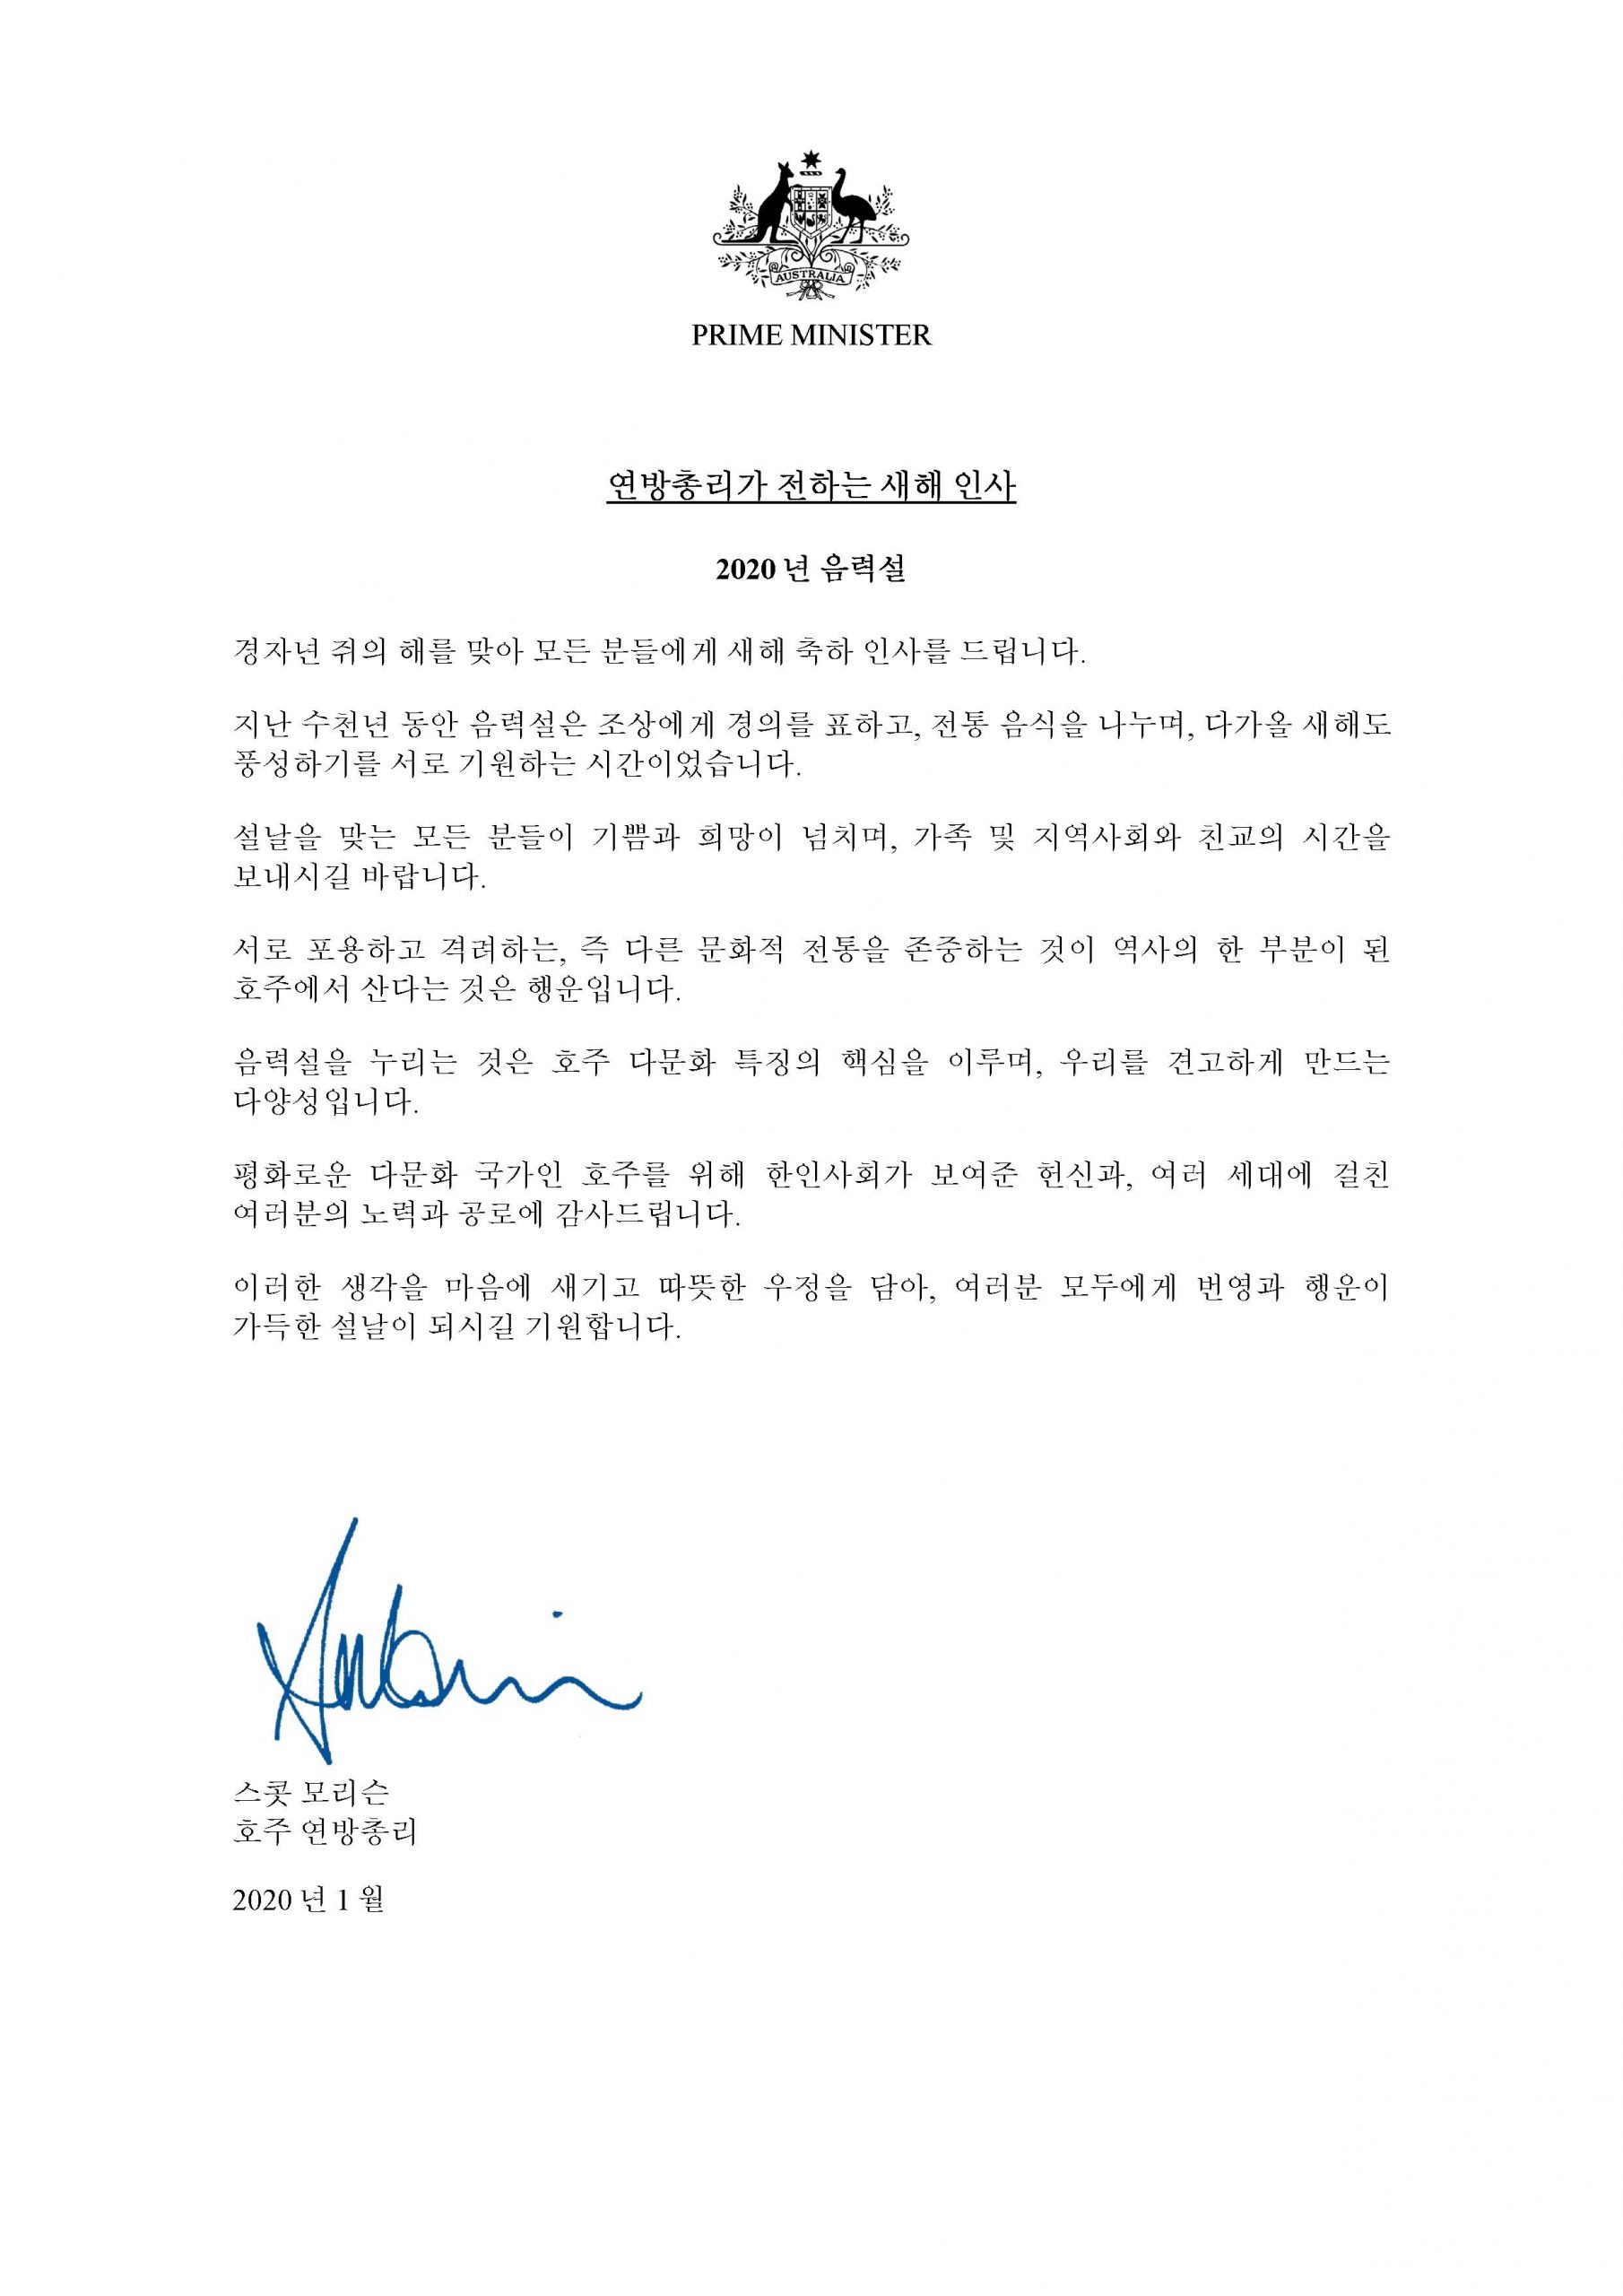 Prime Minister Lunar New Year greeting